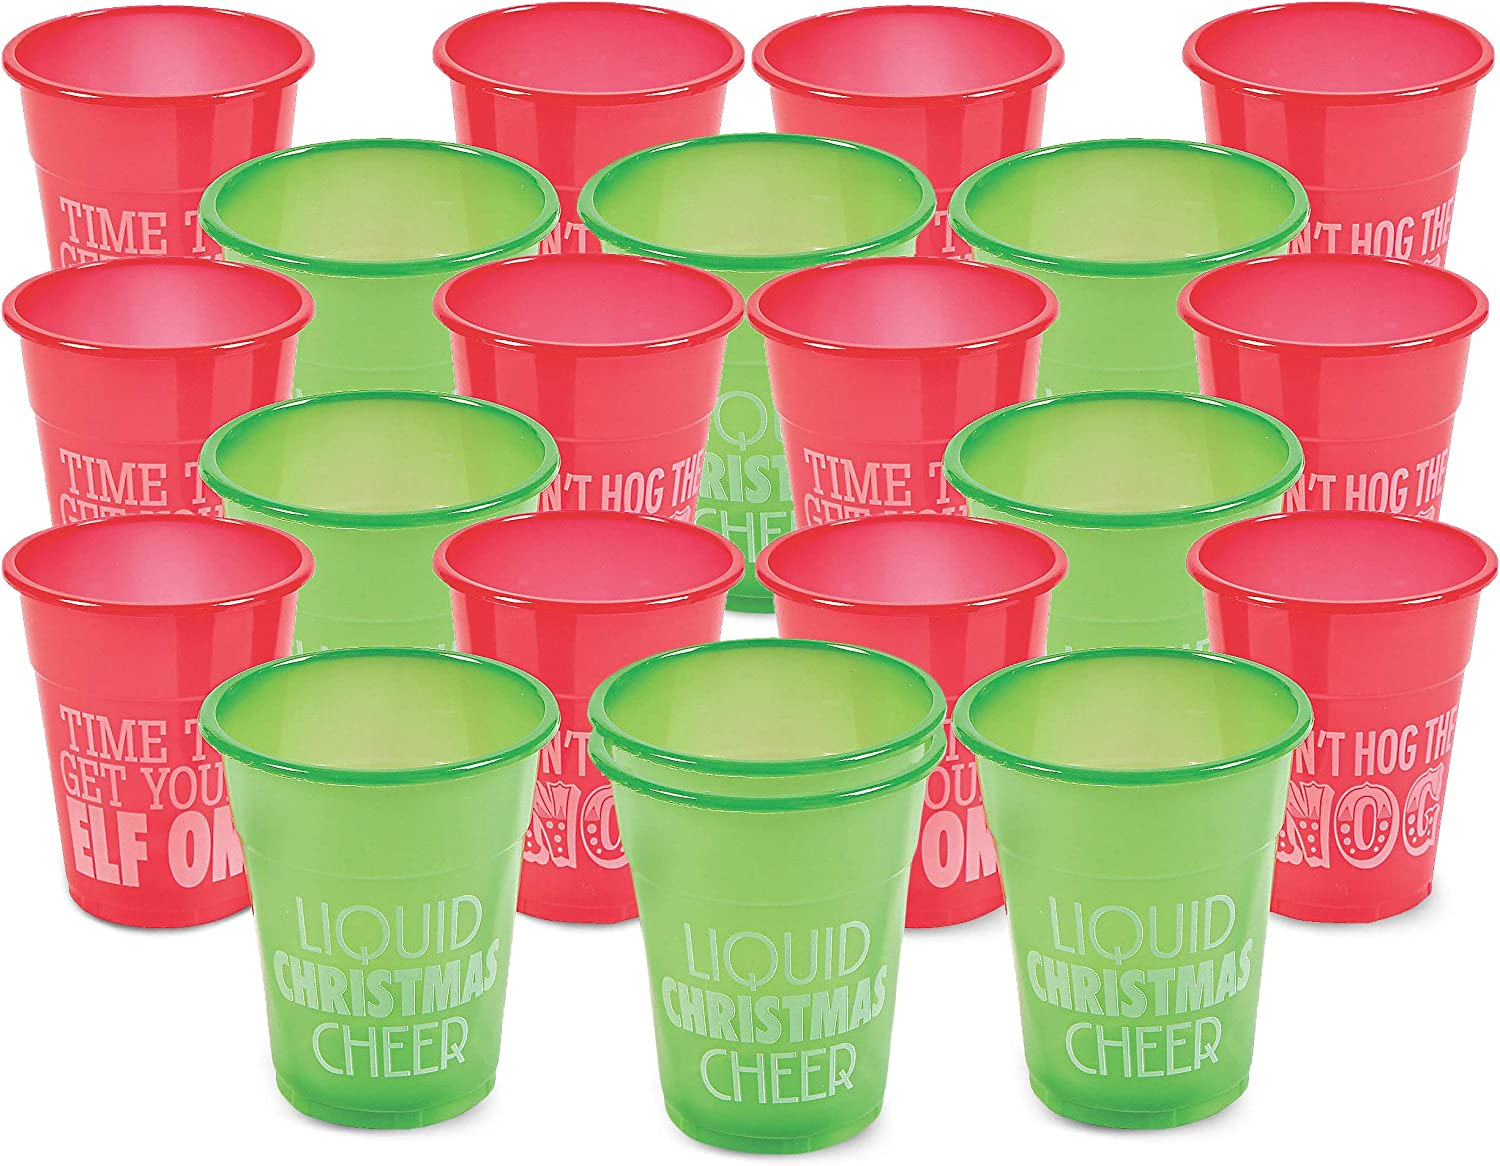 Christmas Plastic Humorous Cups Bulk, Pack of 50 Holiday Deposable Party Drinking Cups, Green and Red, By 4E's Novelty